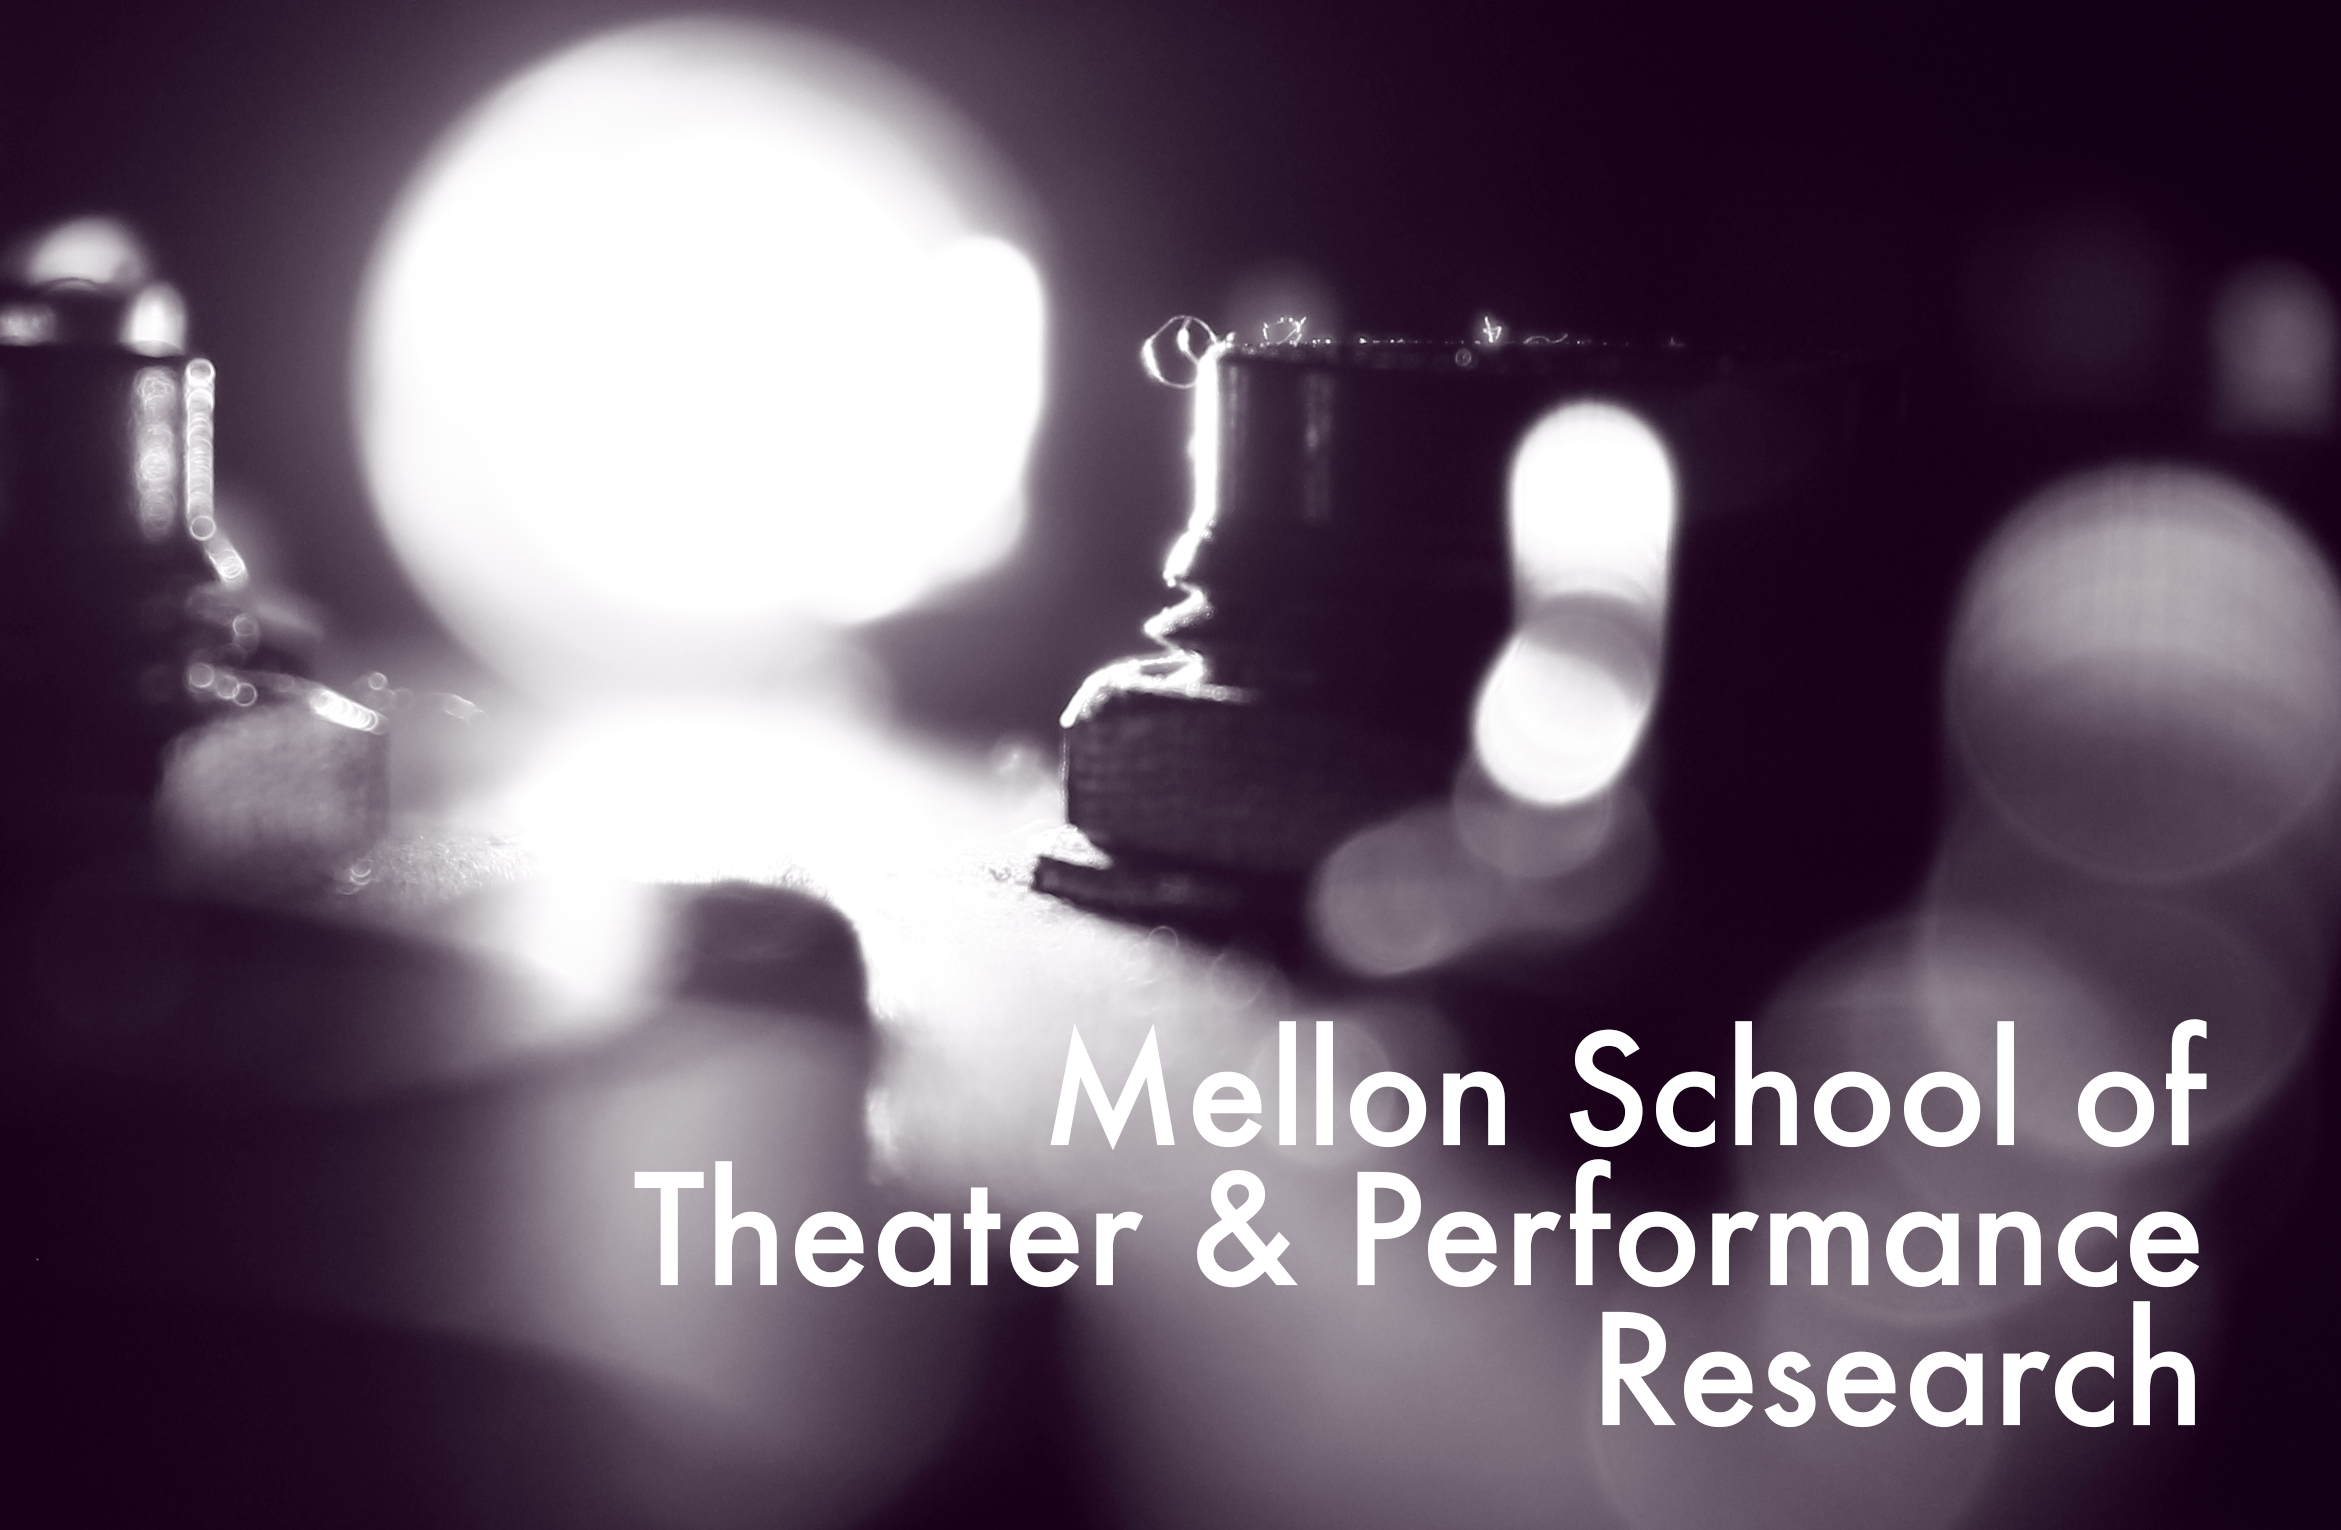 The Mellon School of Theater and Performance Research